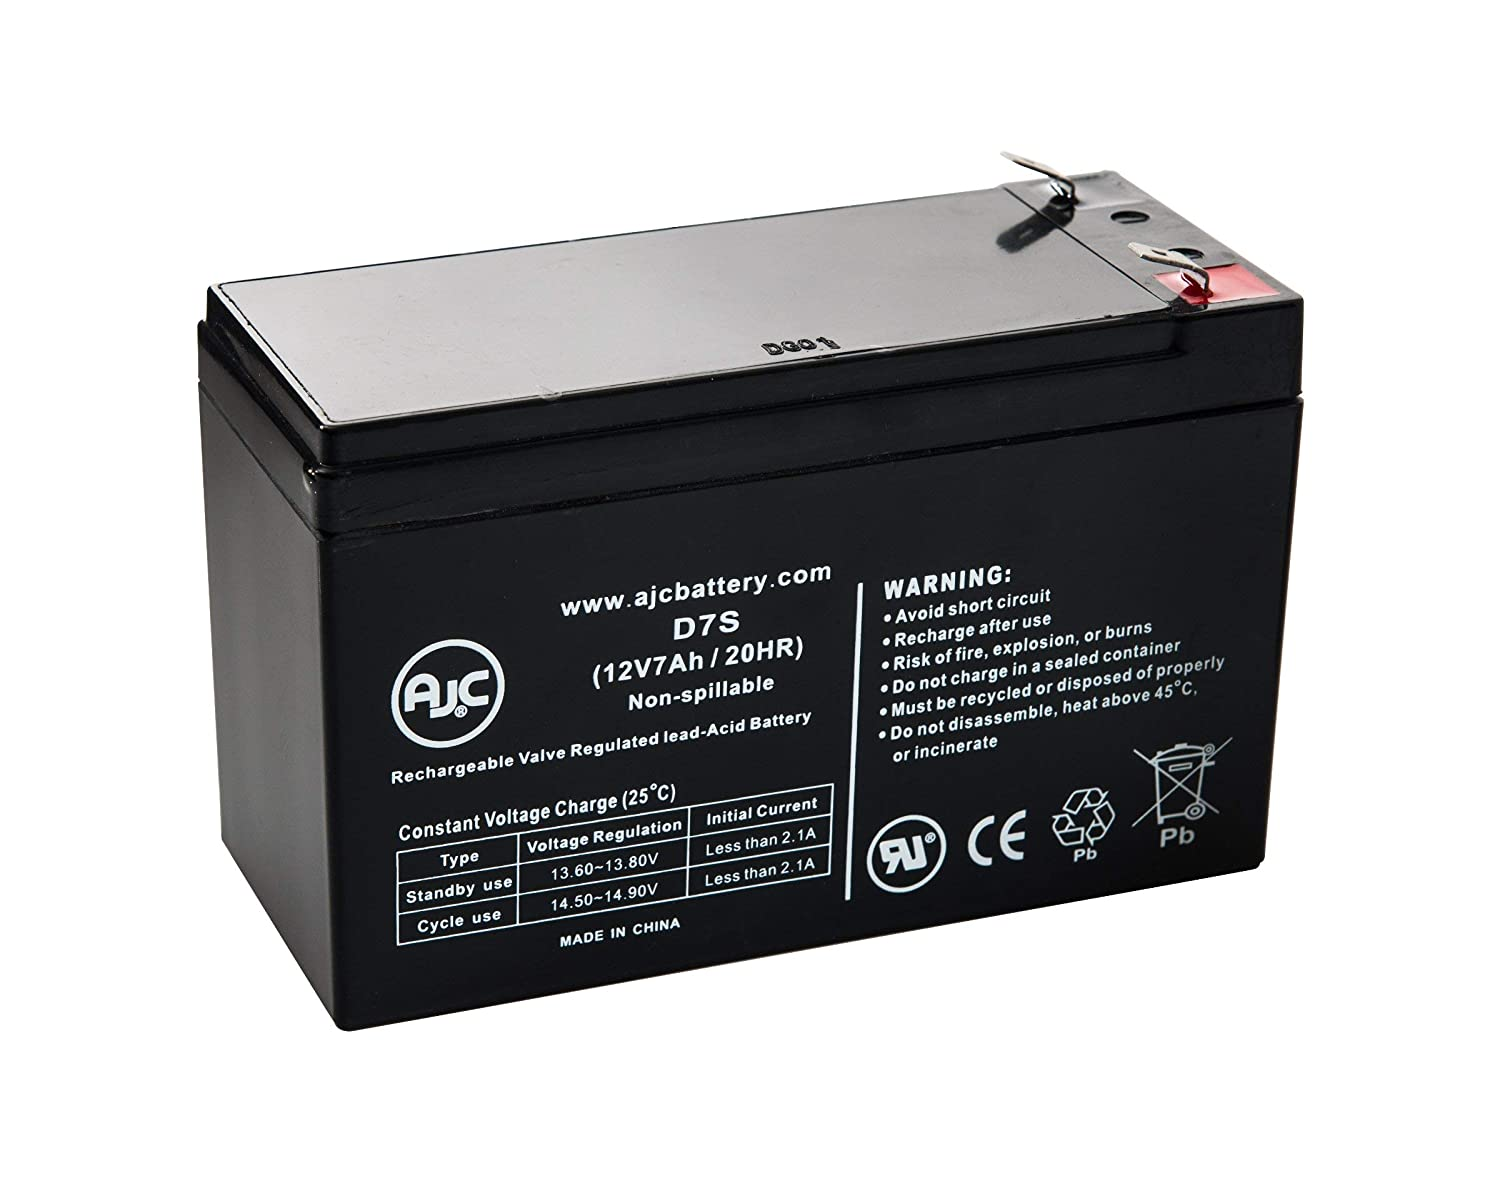 Power Source WP7.5-12 (91-190) 12V 7Ah Sealed Lead Acid Battery - This is an AJC Brand Replacement AJC Battery